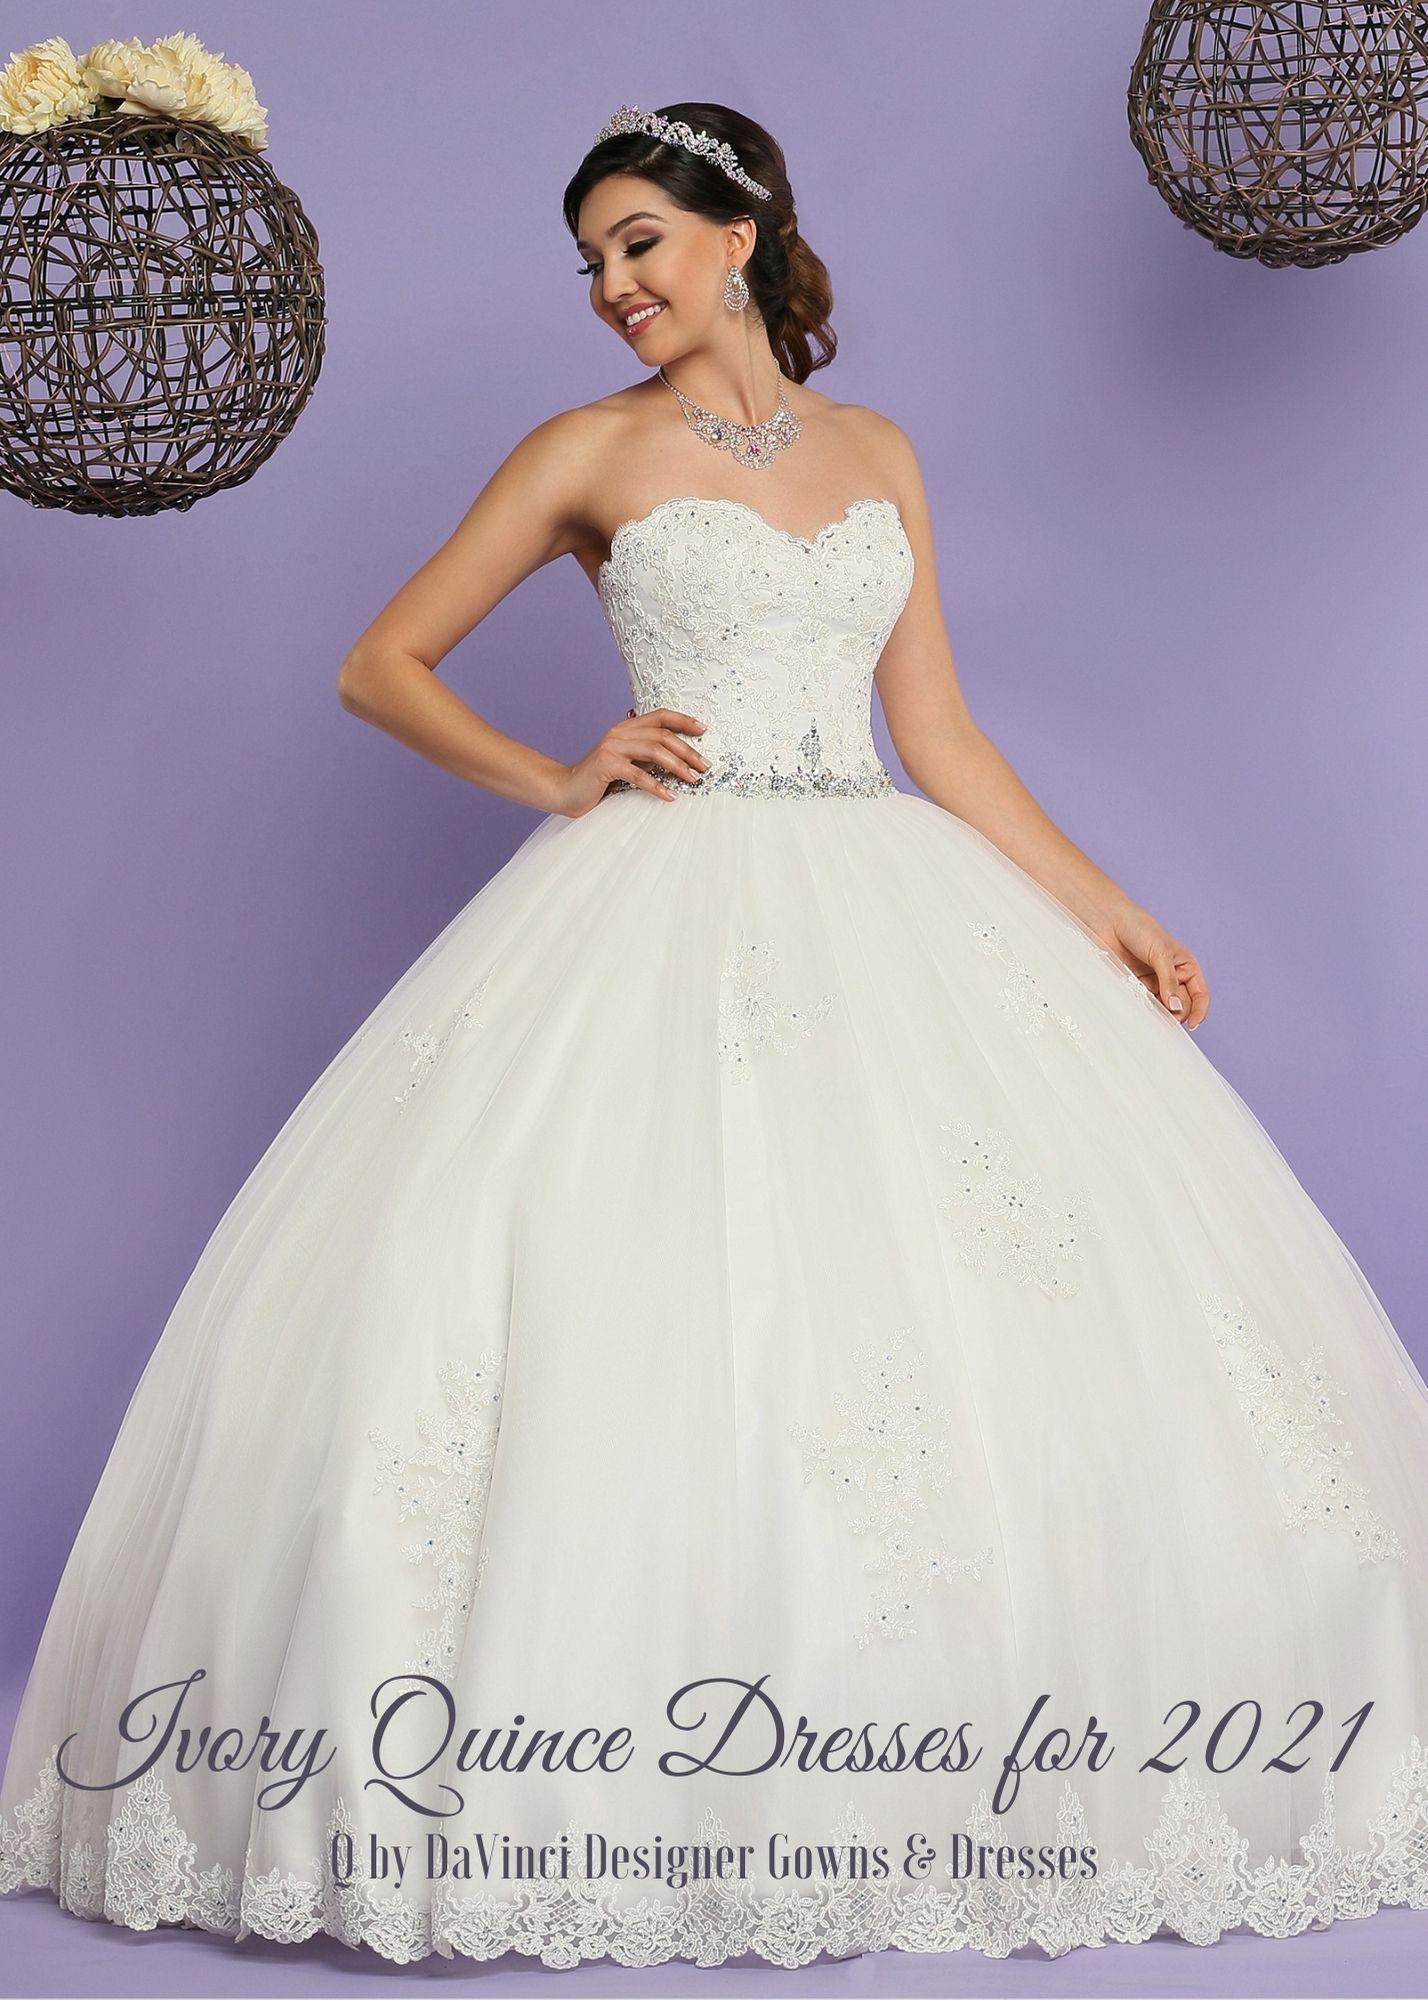 Ivory Quinceanera Dresses for 2021 – Q by DaVinci